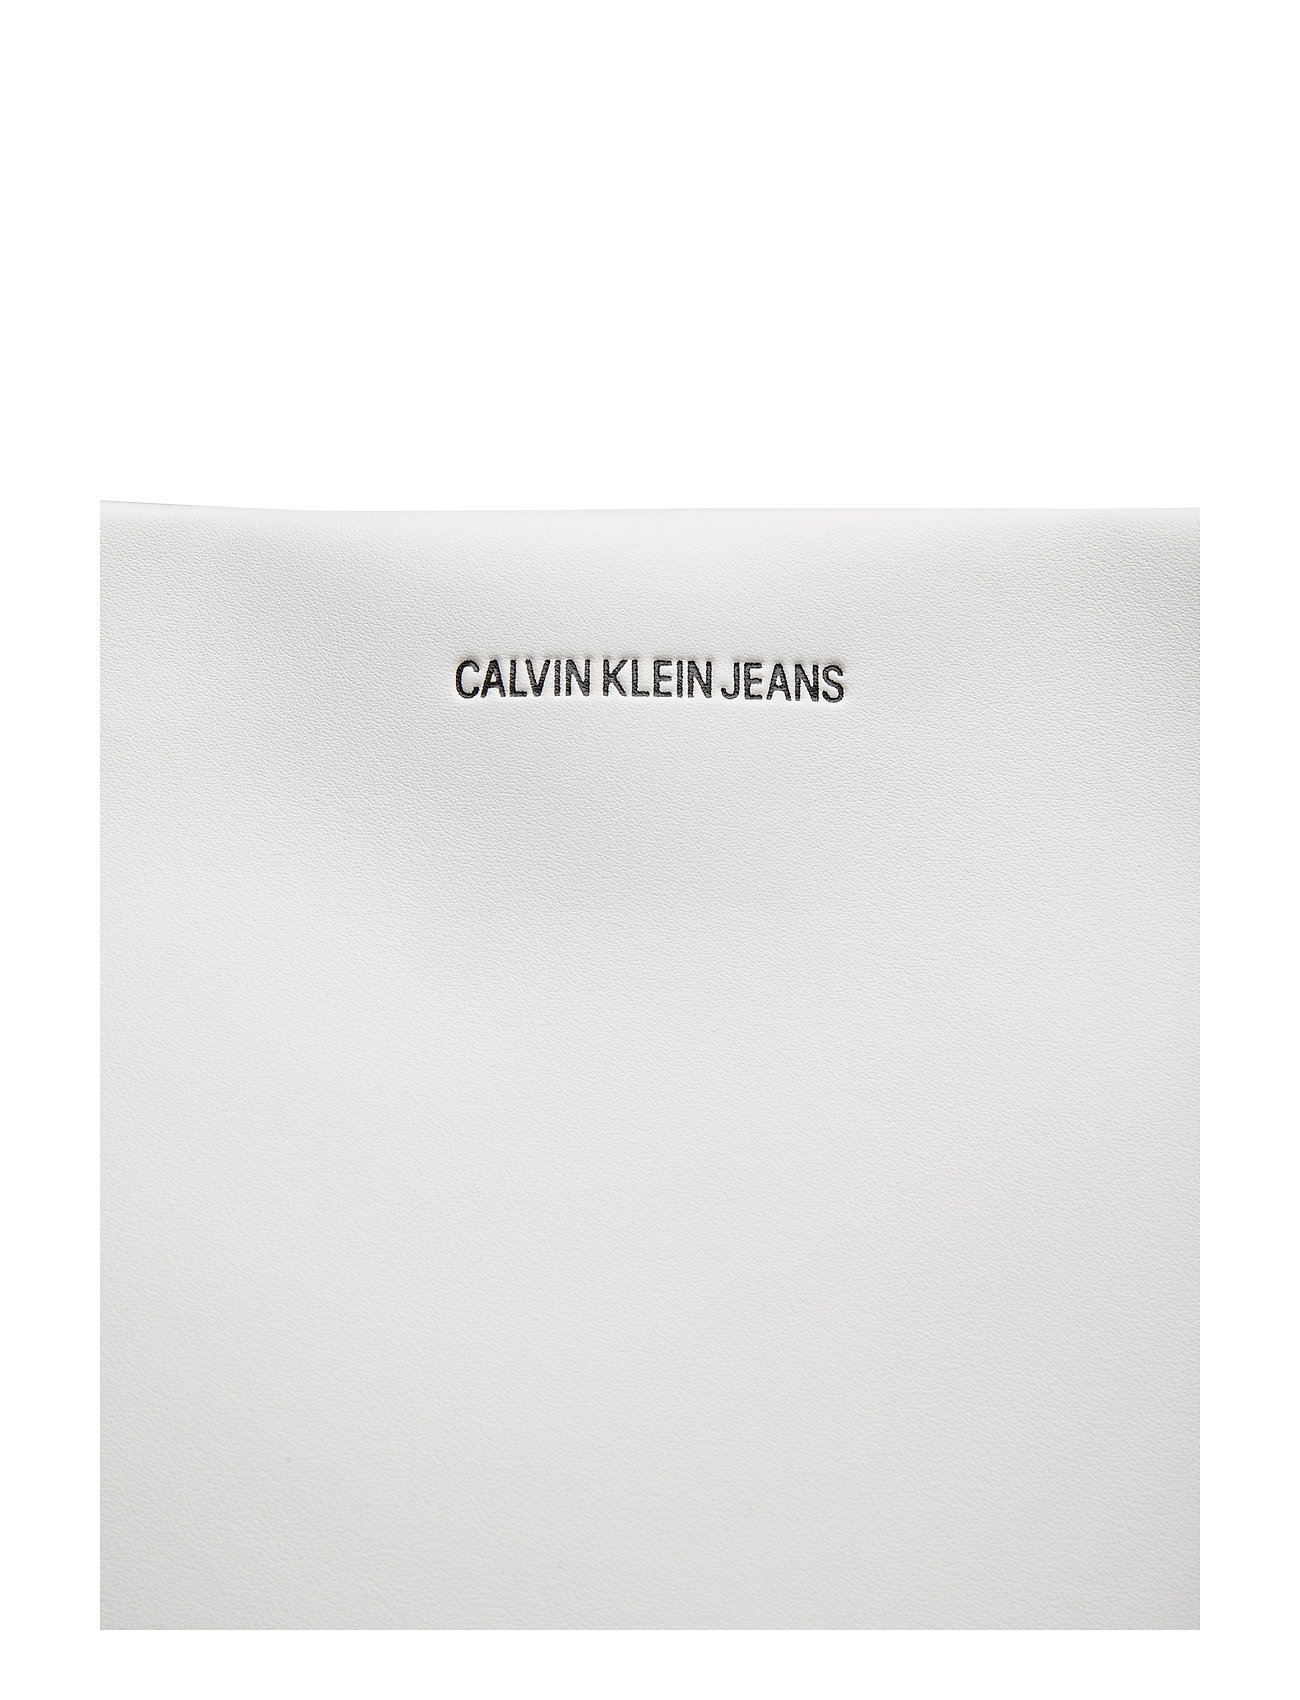 Totebright Sculpted Sculpted Klein WhiteCalvin WhiteCalvin Totebright Klein Sculpted WhiteCalvin Totebright Tl3FK1Jc